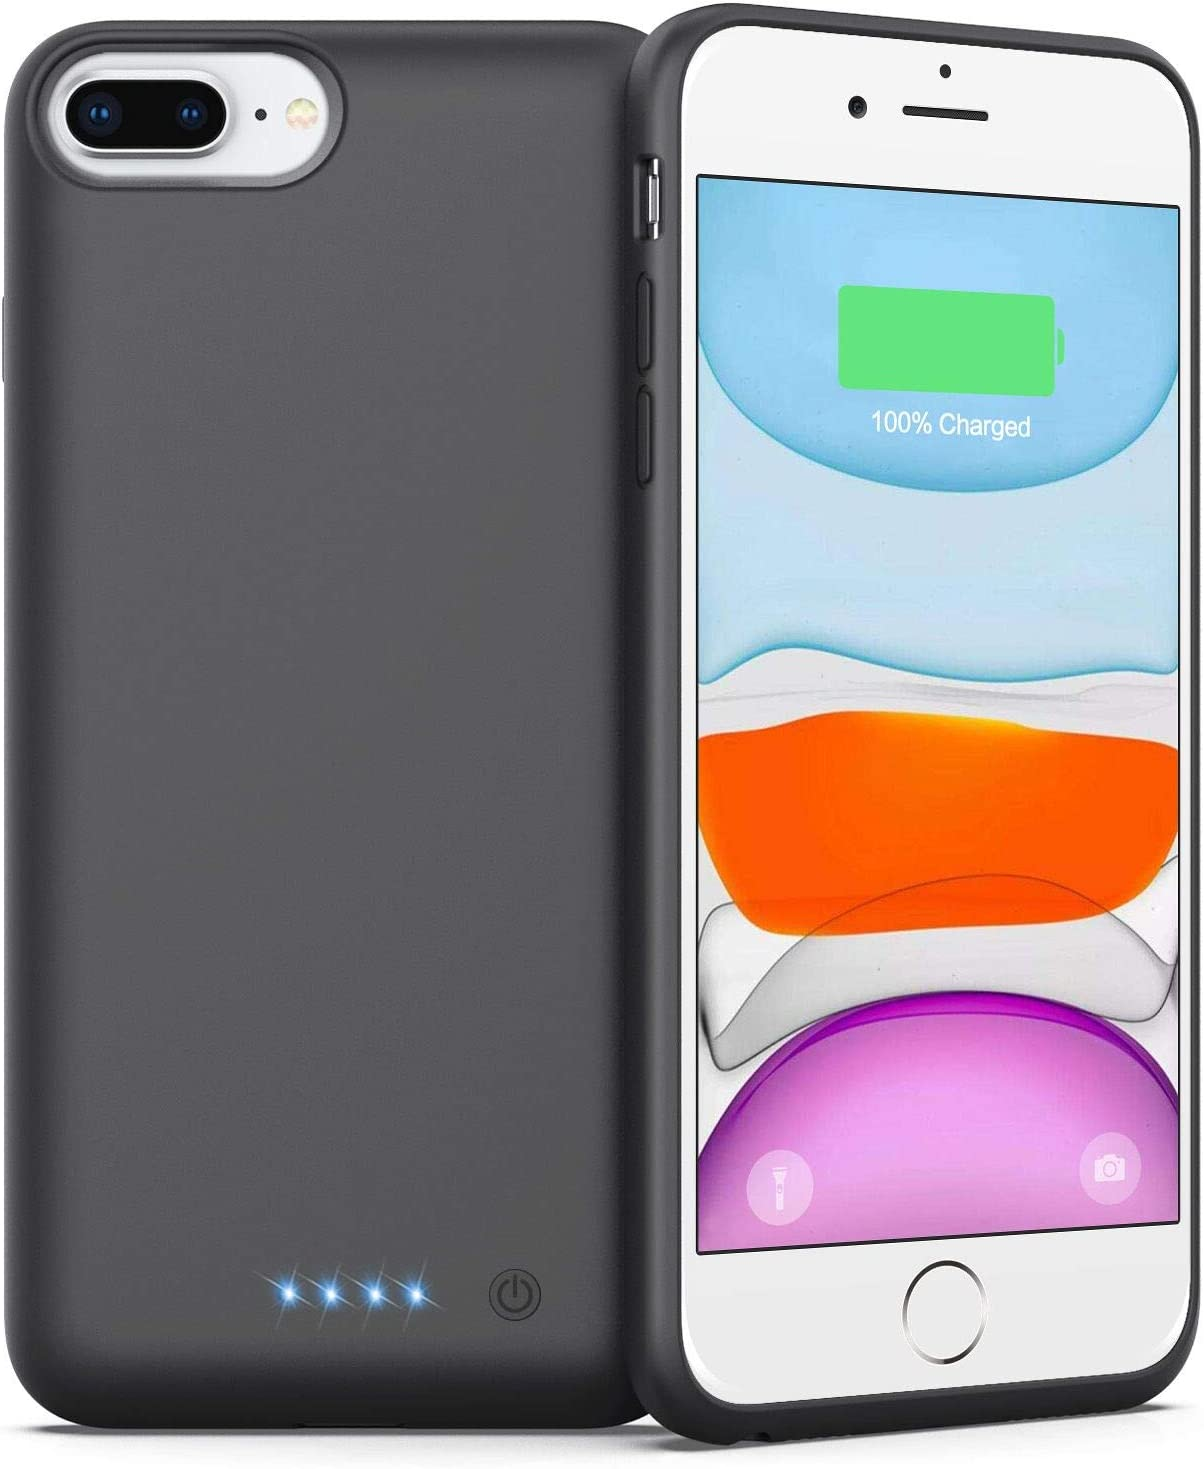 Battery Case for Popular standard iPhone 6 8 Newest 8500mAh 7 Plus Chicago Mall